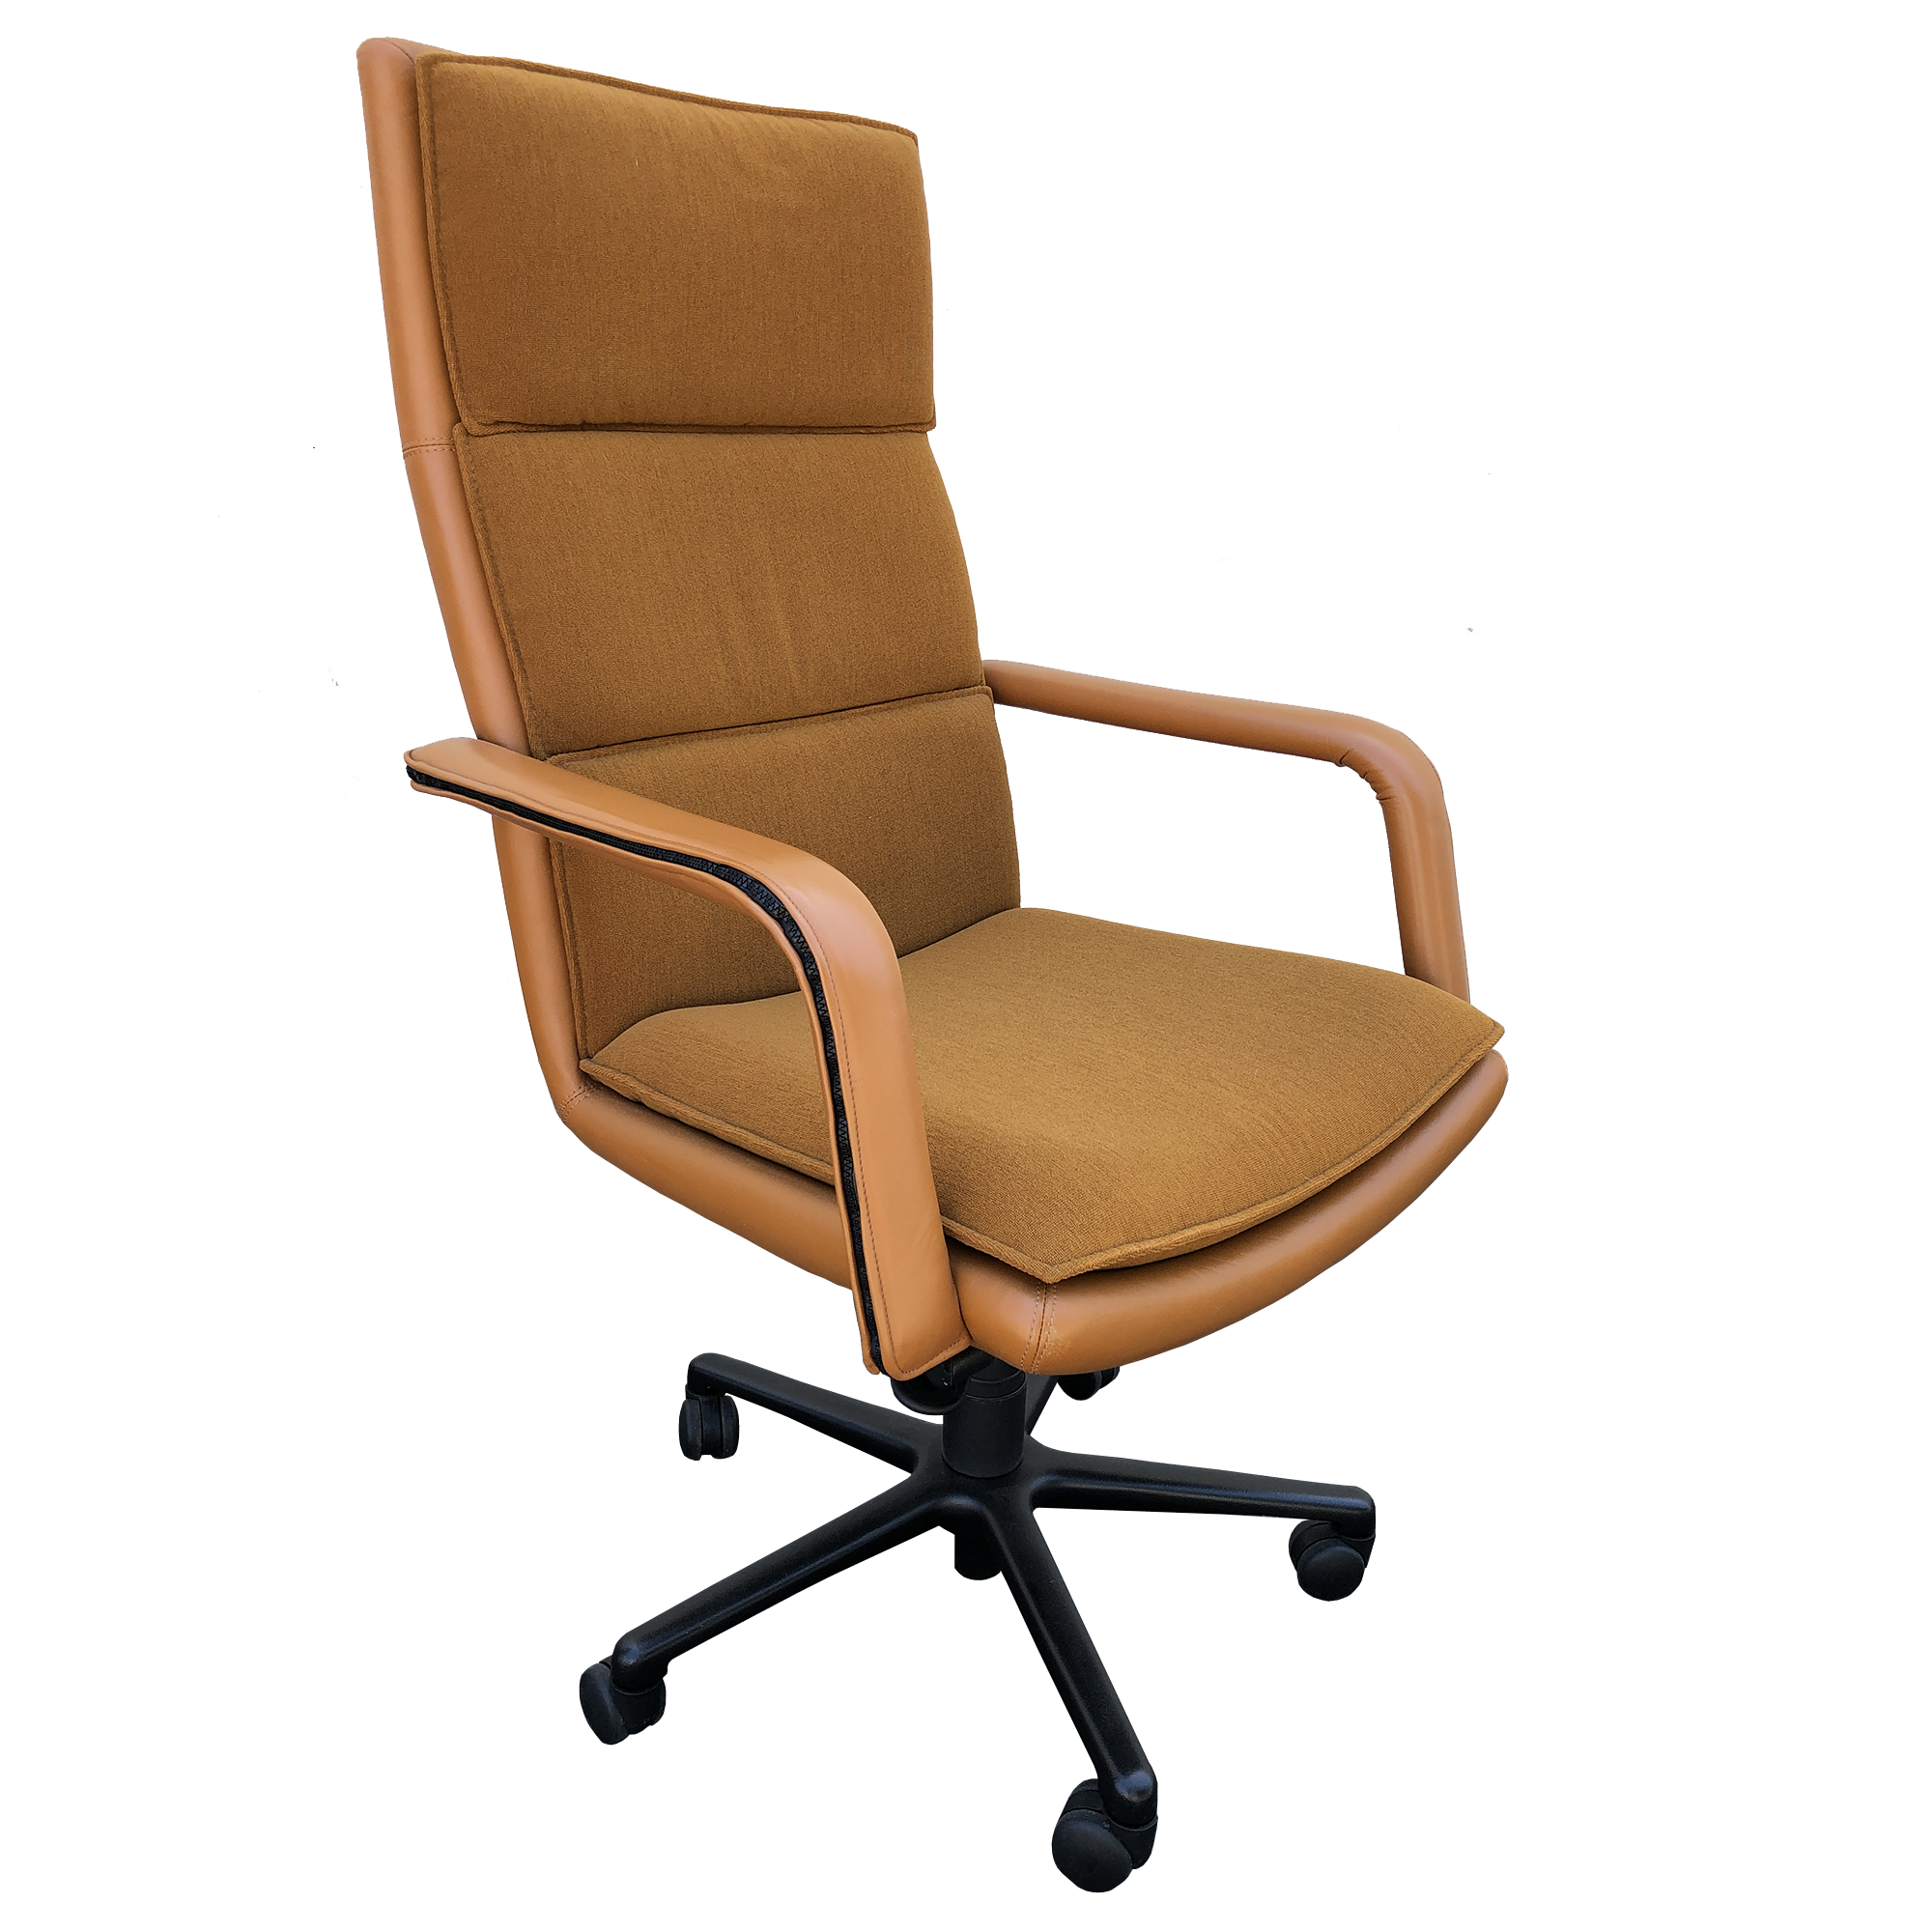 Outstanding Keilhauer Conference Chairs In Leather And Fabric Caraccident5 Cool Chair Designs And Ideas Caraccident5Info